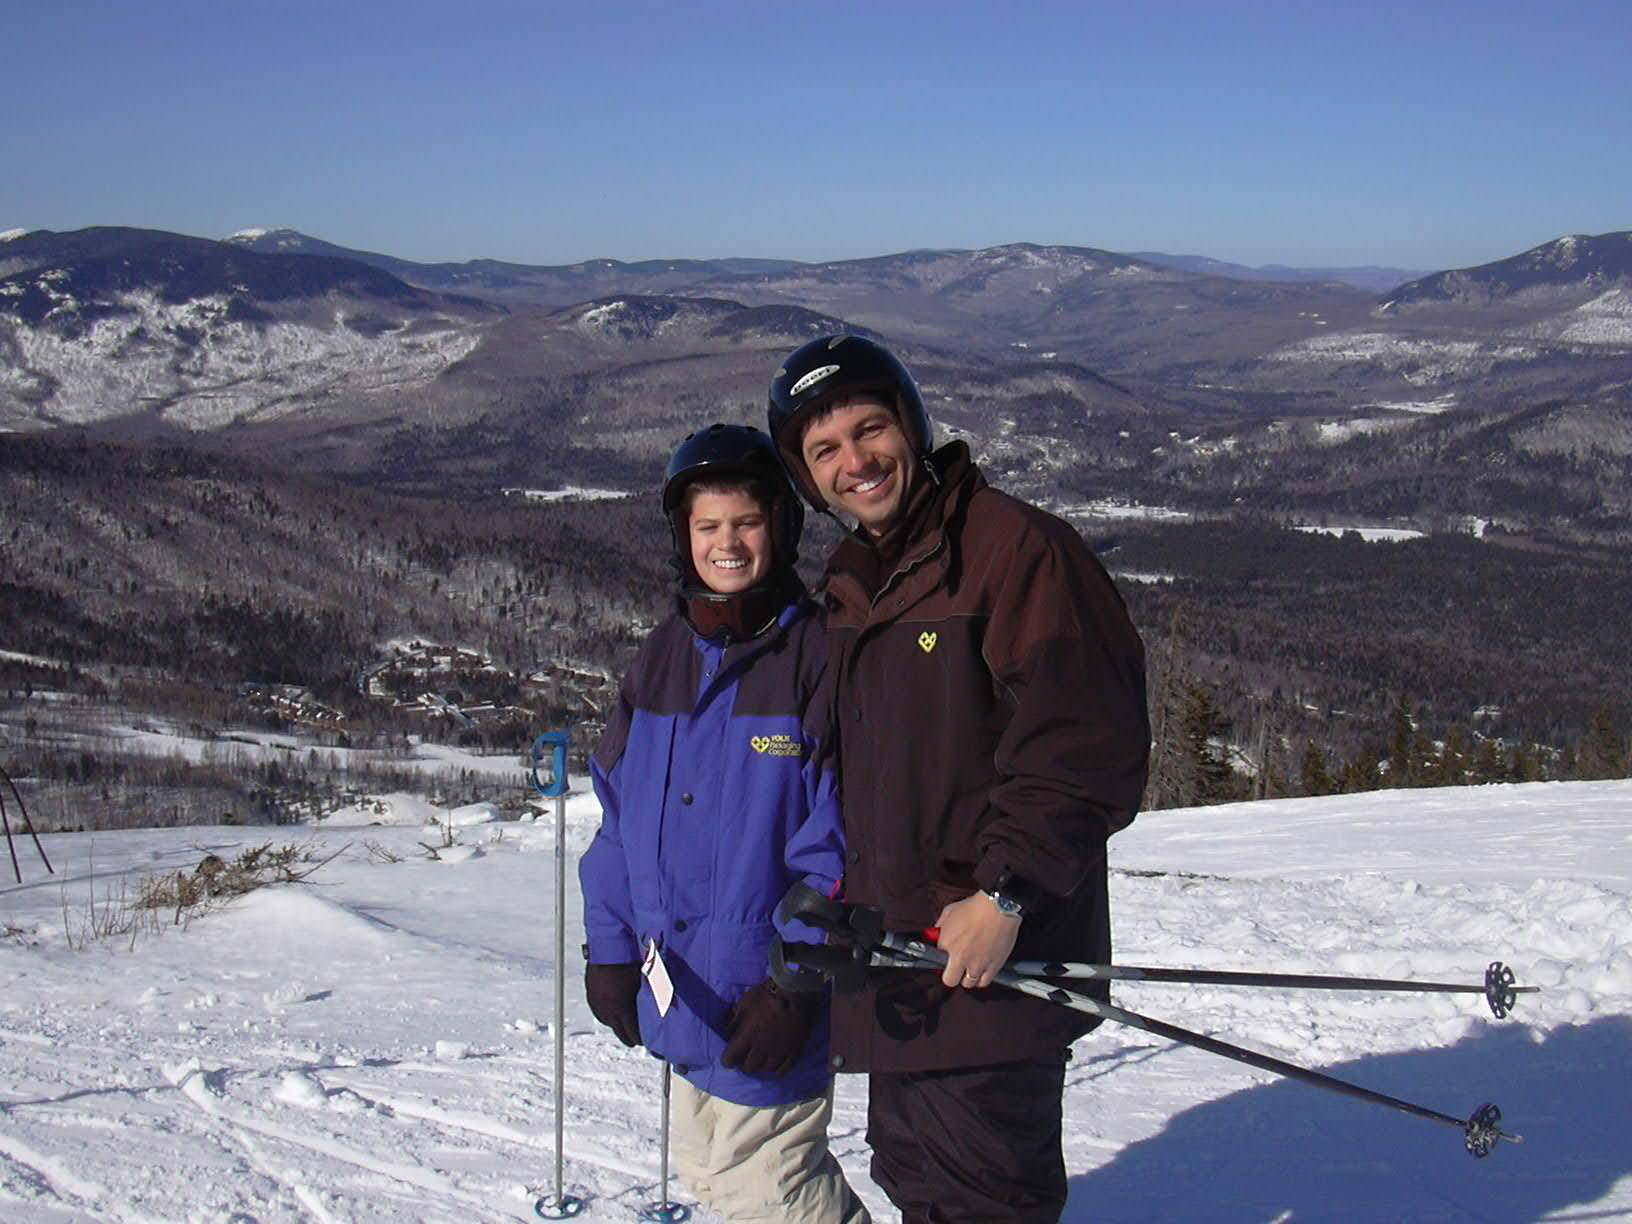 Dylan & Dad at Sunday River - Mar05